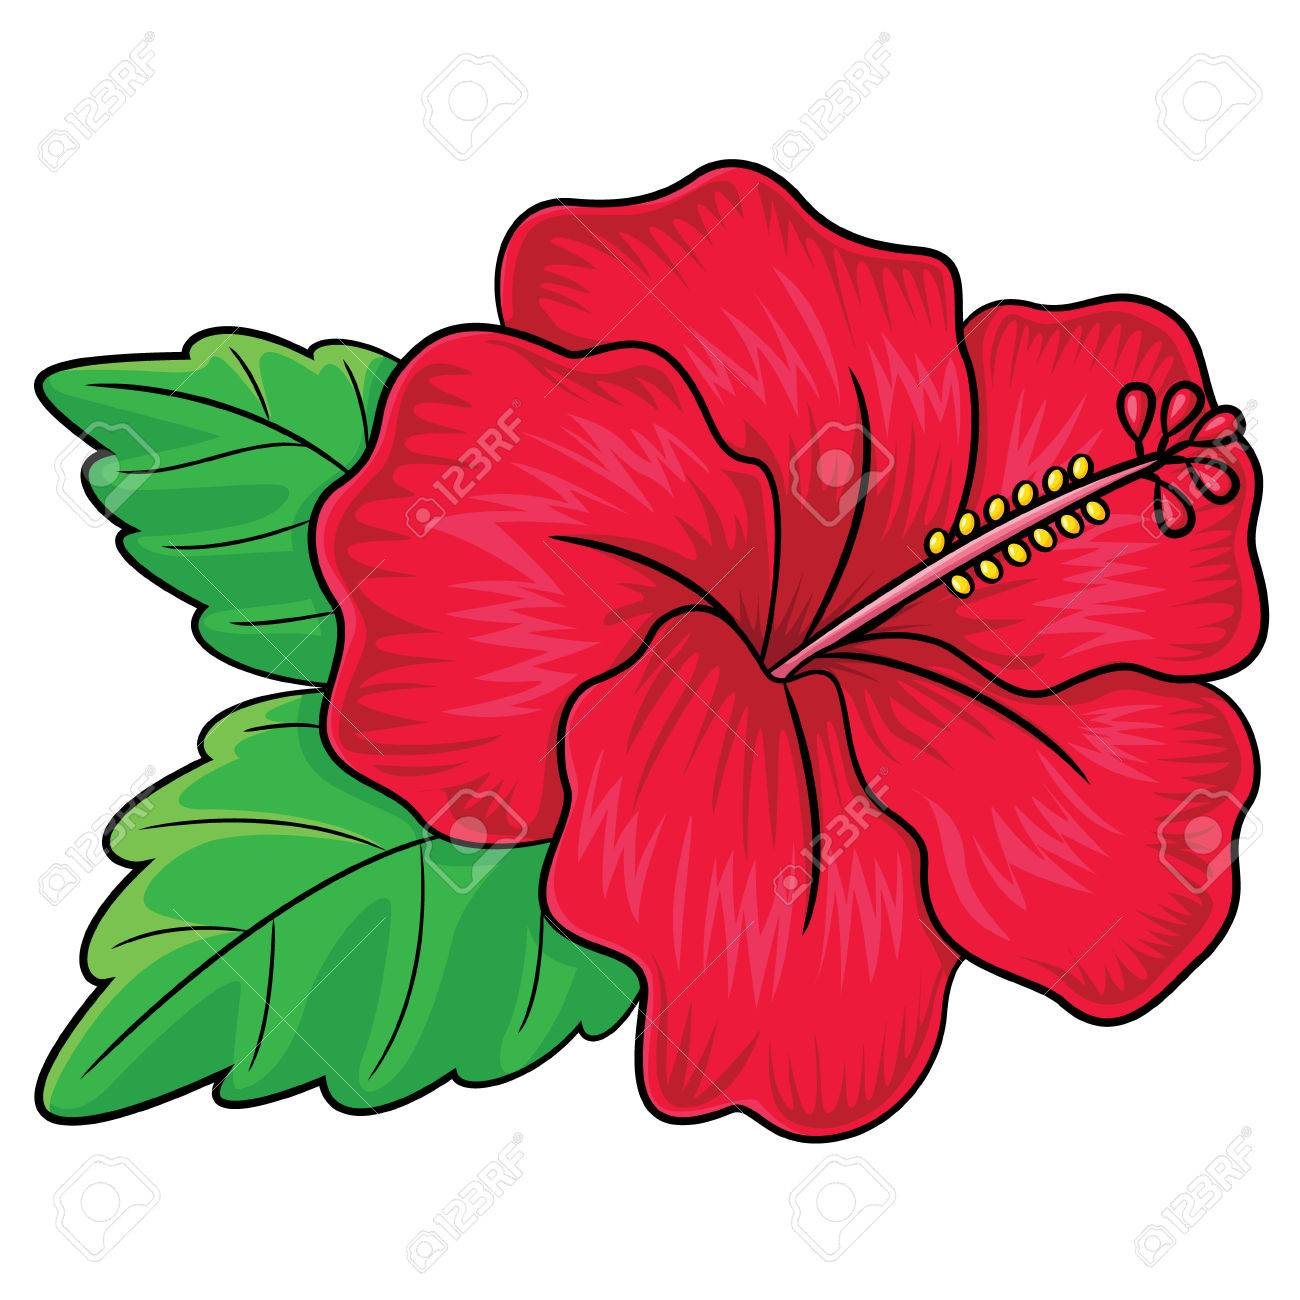 Illustration Of Cute Cartoon Hibiscus Flower Royalty Free Cliparts